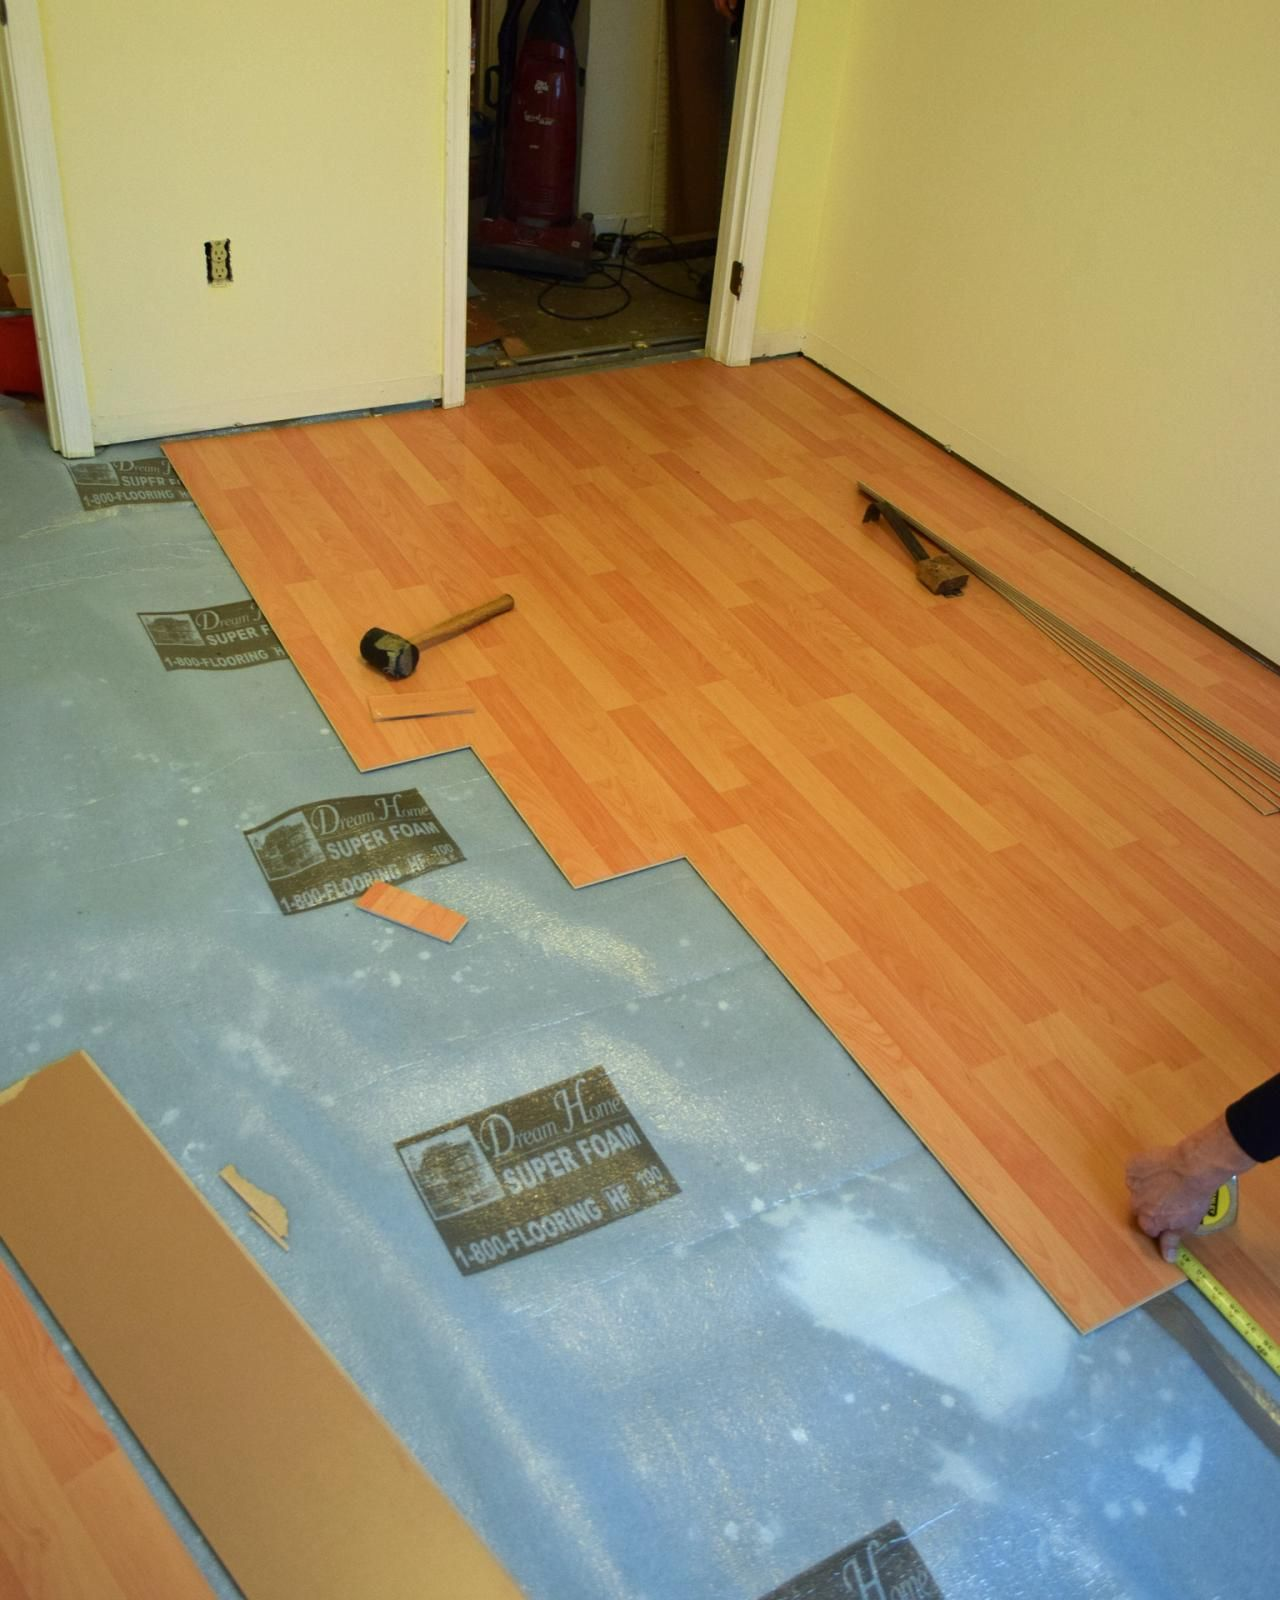 How to install laminate flooring diy network laminate flooring diy network has step by step instructions on how to rip out old carpeting solutioingenieria Image collections